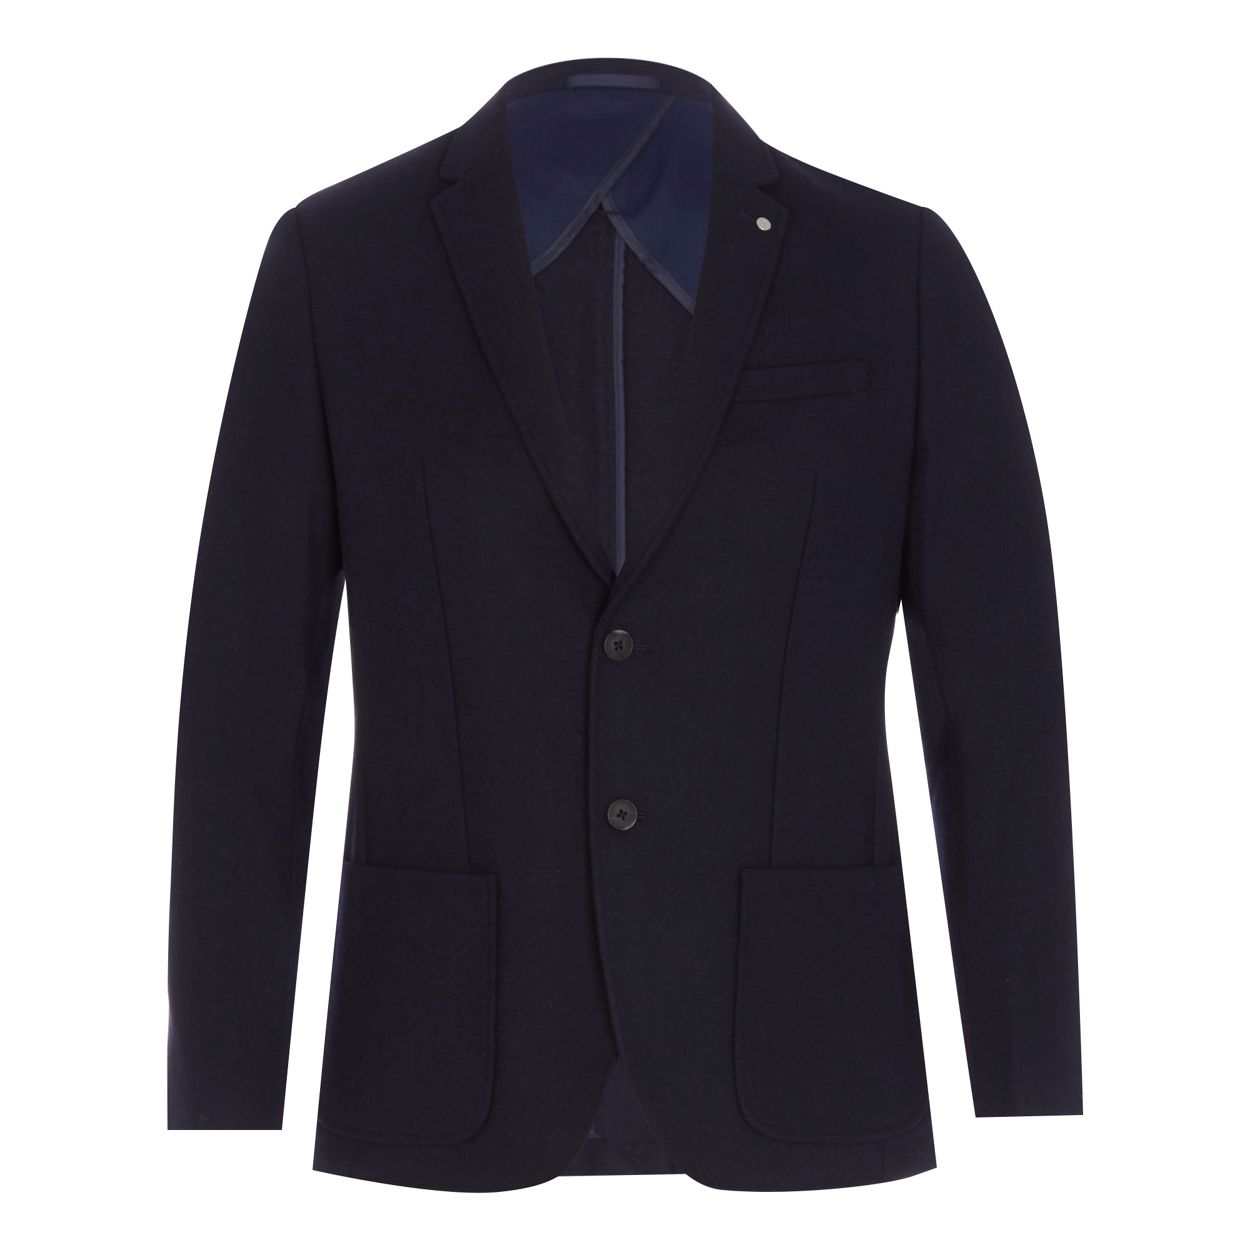 J by Jasper Conran Navy textured single breasted wool blend jacket